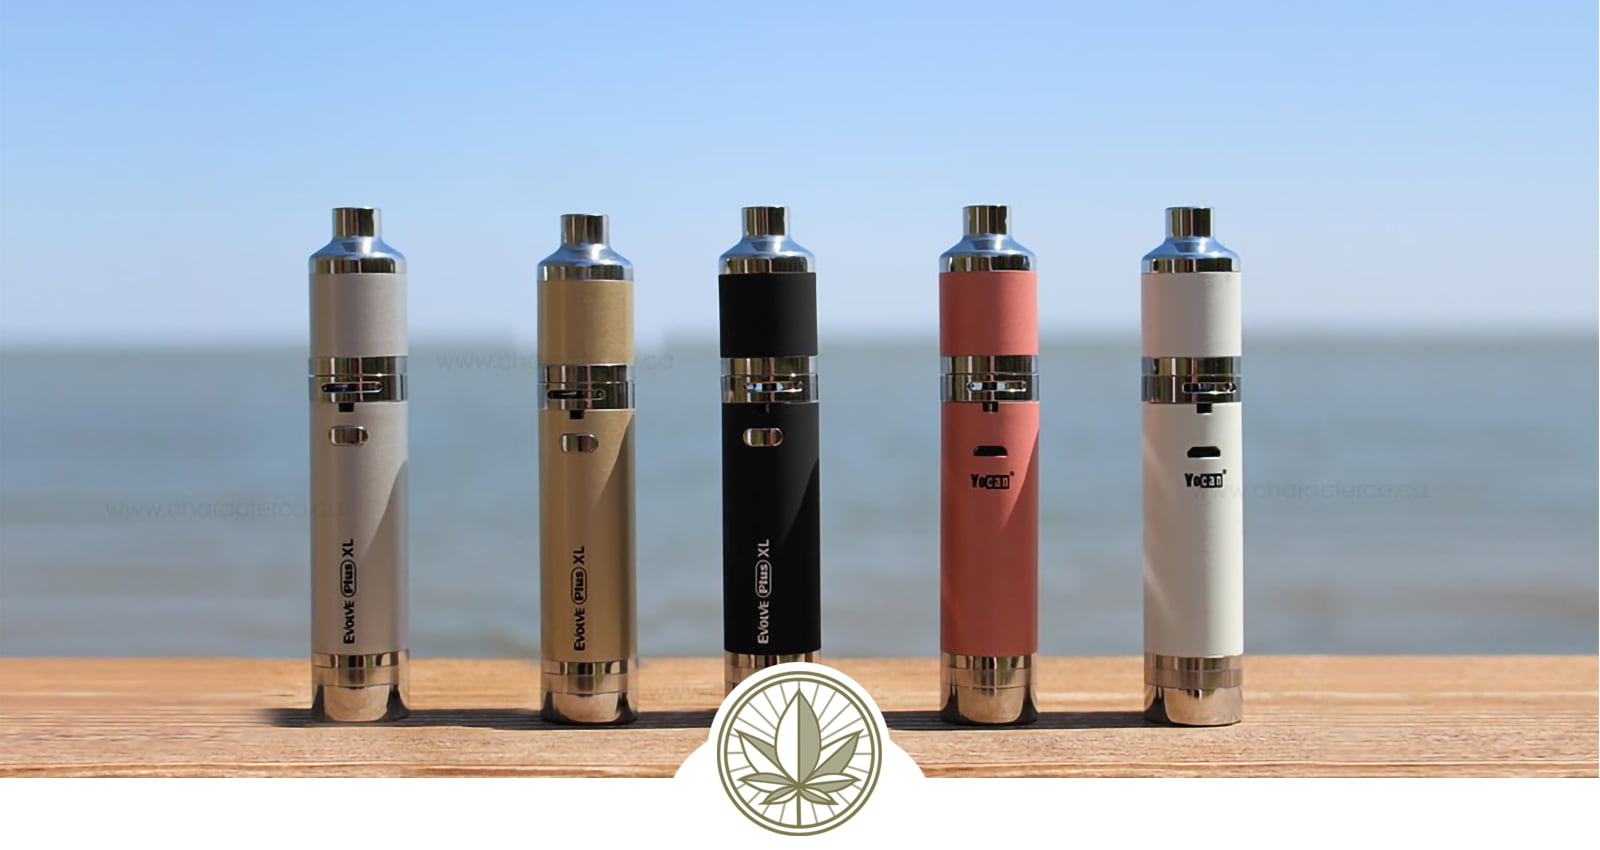 Review of the Yocan Evolve Plus XL- A1